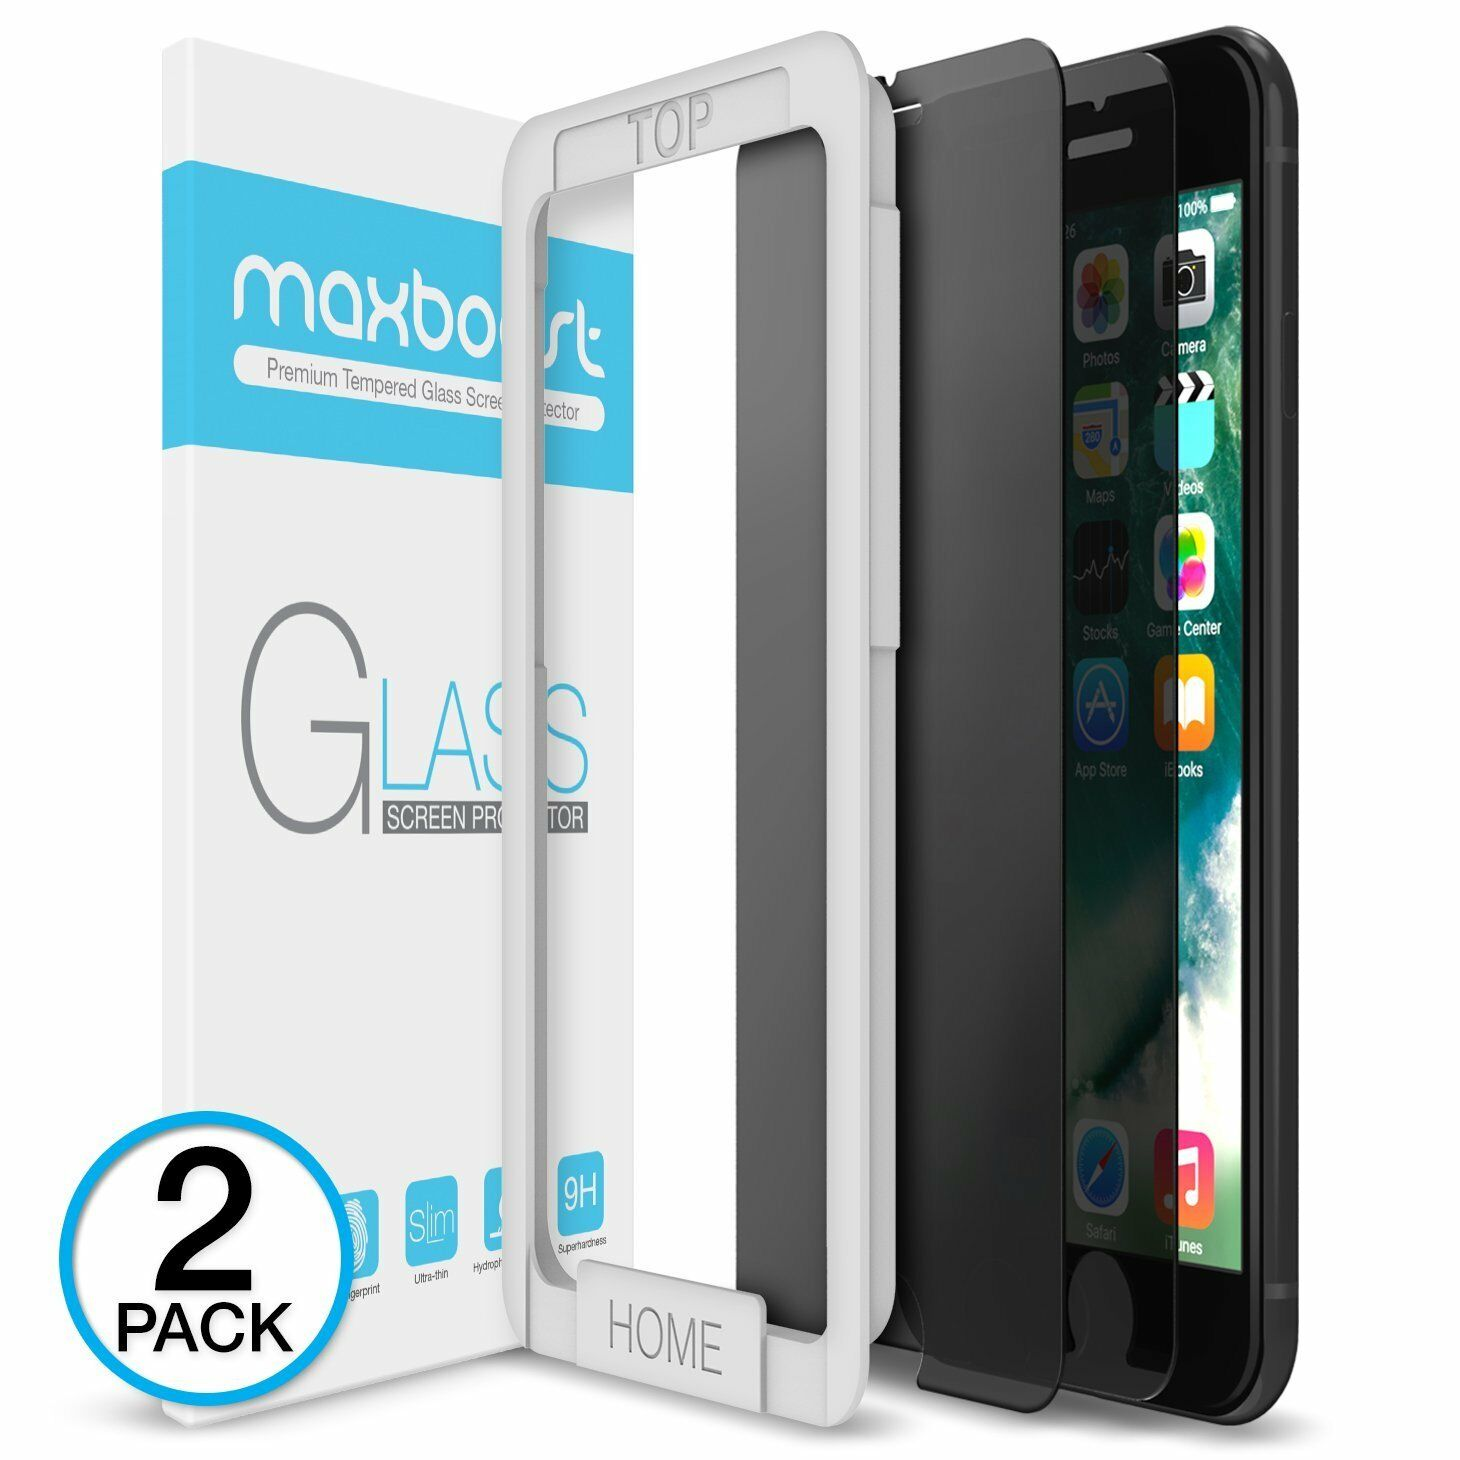 iPhone 6 7 8 X XR XS MAXBOOST Plus 3D Screen Protector Maxbo